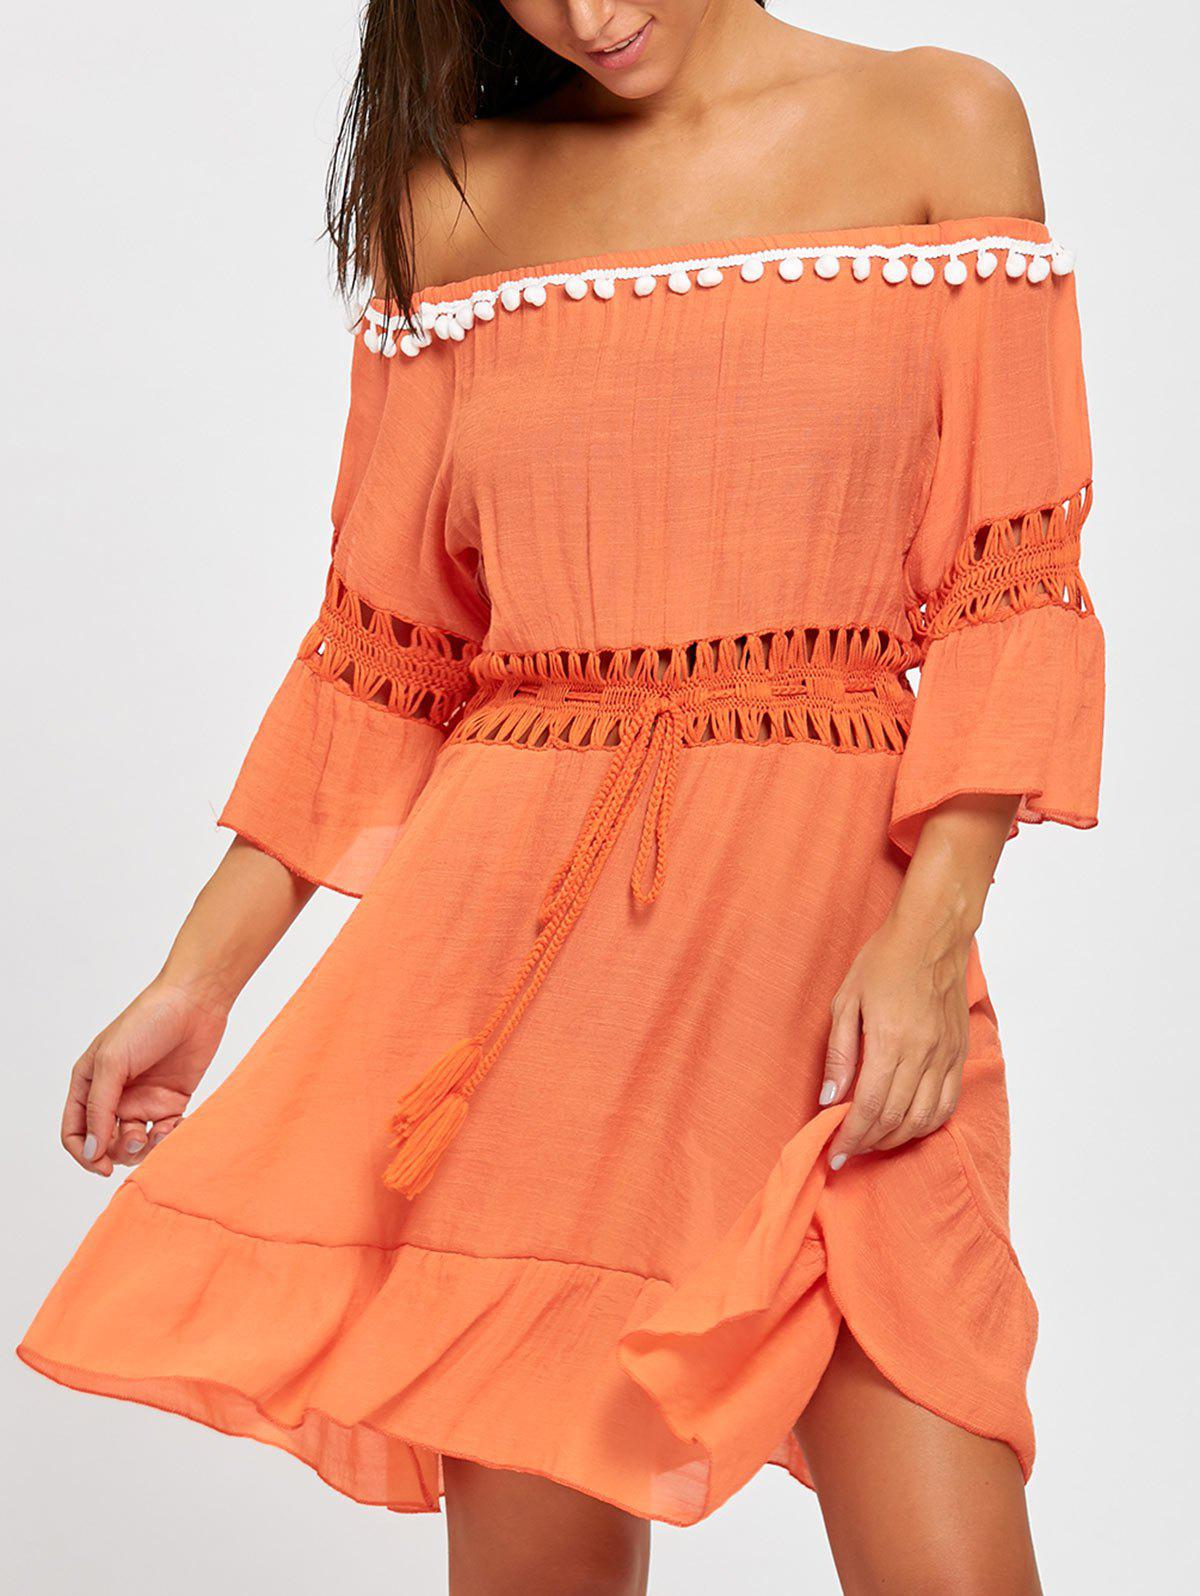 Flounce Off Shoulder Cover-up DressWOMEN<br><br>Size: ONE SIZE; Color: ORANGE RED; Cover-Up Type: Dress; Gender: For Women; Material: Polyester; Neckline: Off The Shoulder; Shirt Length: Short; Sleeve Length: 3/4 Length Sleeves; Pattern Type: Solid; Embellishment: Crochet; Weight: 0.2700kg; Package Contents: 1 x Dress;